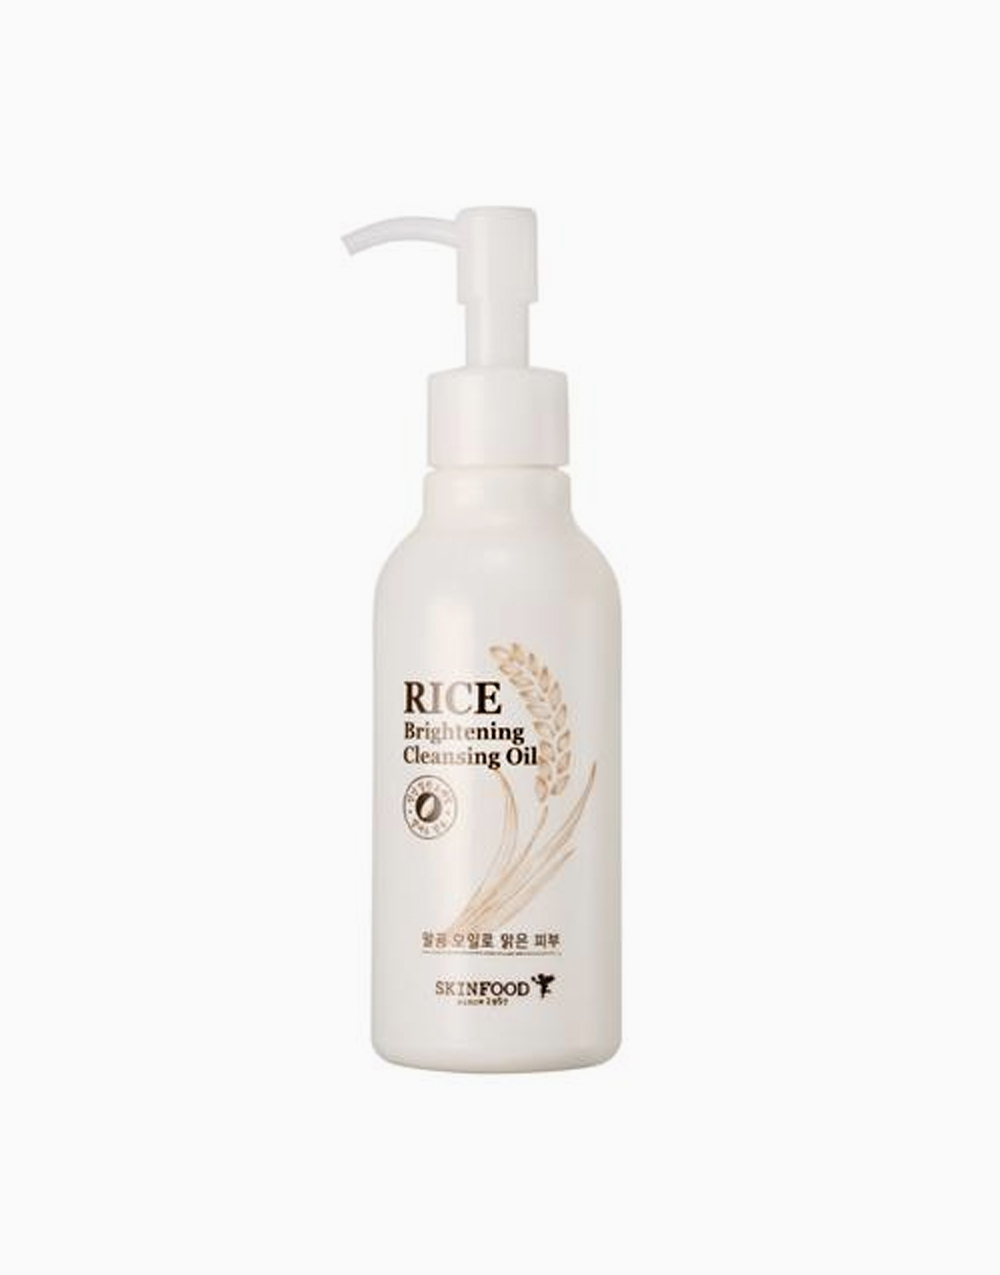 Rice Brightening Cleansing Oil by Skinfood